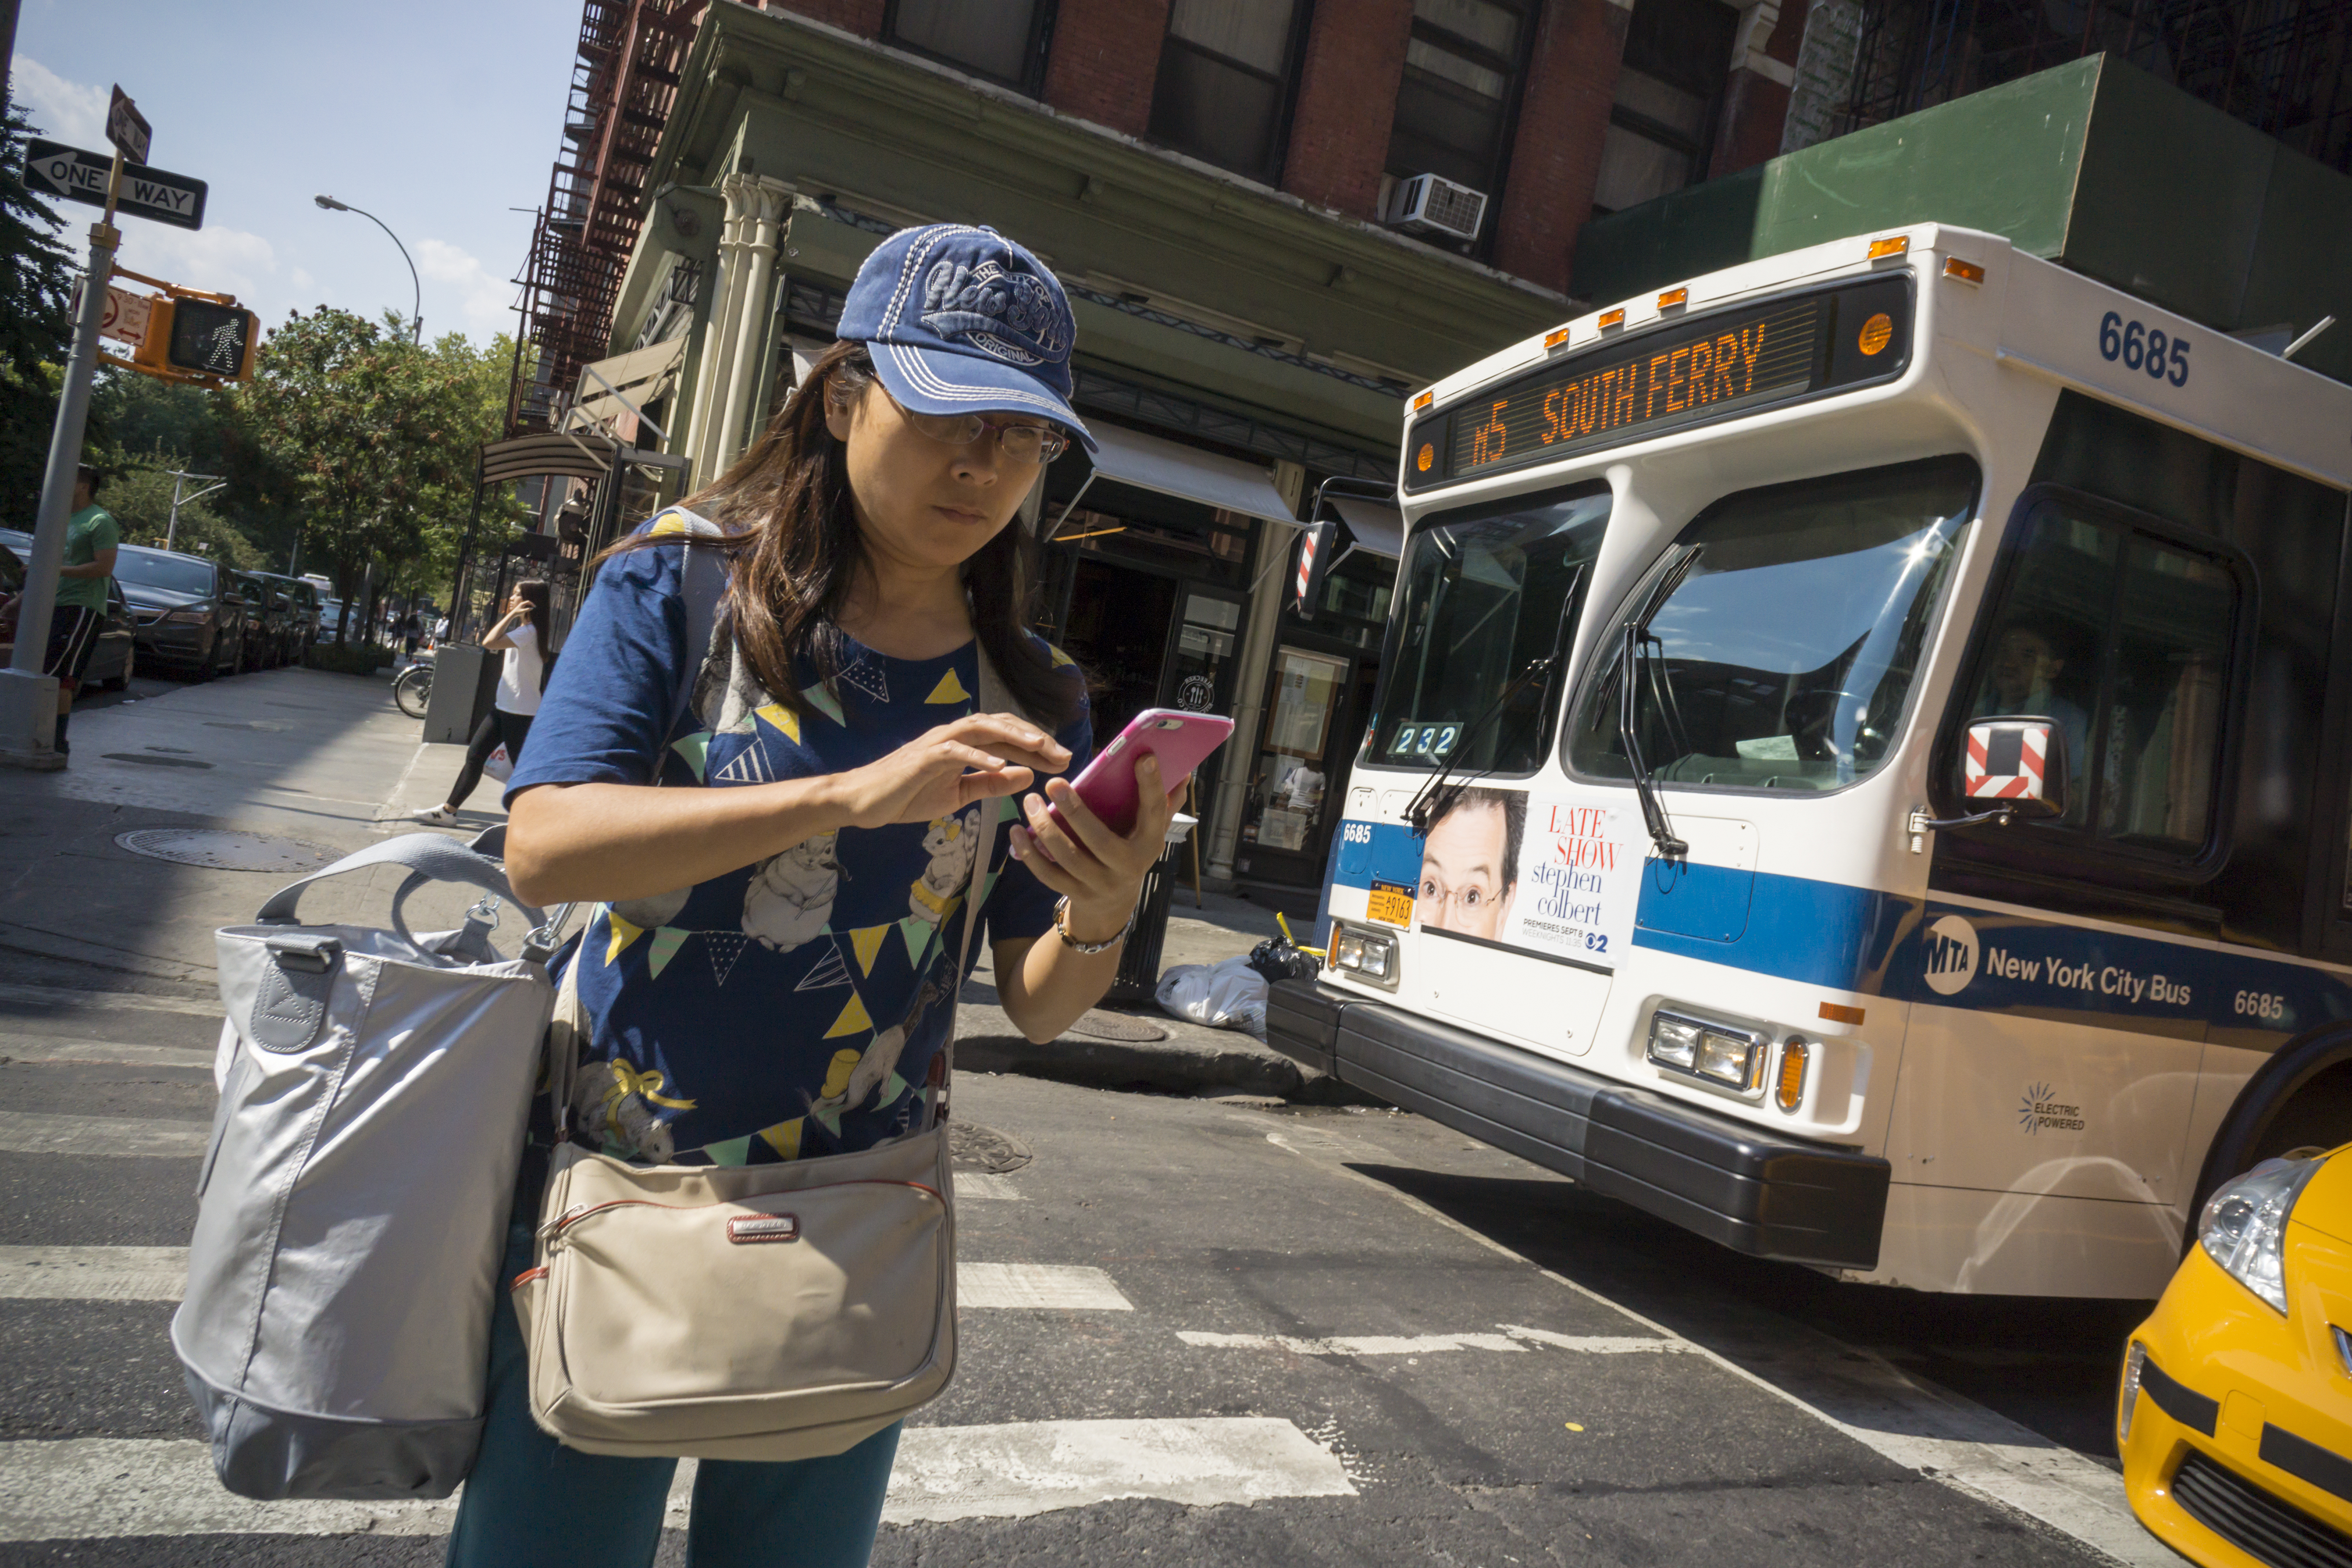 A pedestrian checks her smartphone on Broadway in New York on Saturday, August 28, 2015. A bill introduced in New Jersey would make it illegal for anyone to text and walk at the same time. Offenders could be fined $50 and/or 15 days in jail. No date has been set for when this bill will be voted on. (© Richard B. Levine) (Photo by Richard Levine/Corbis via Getty Images)